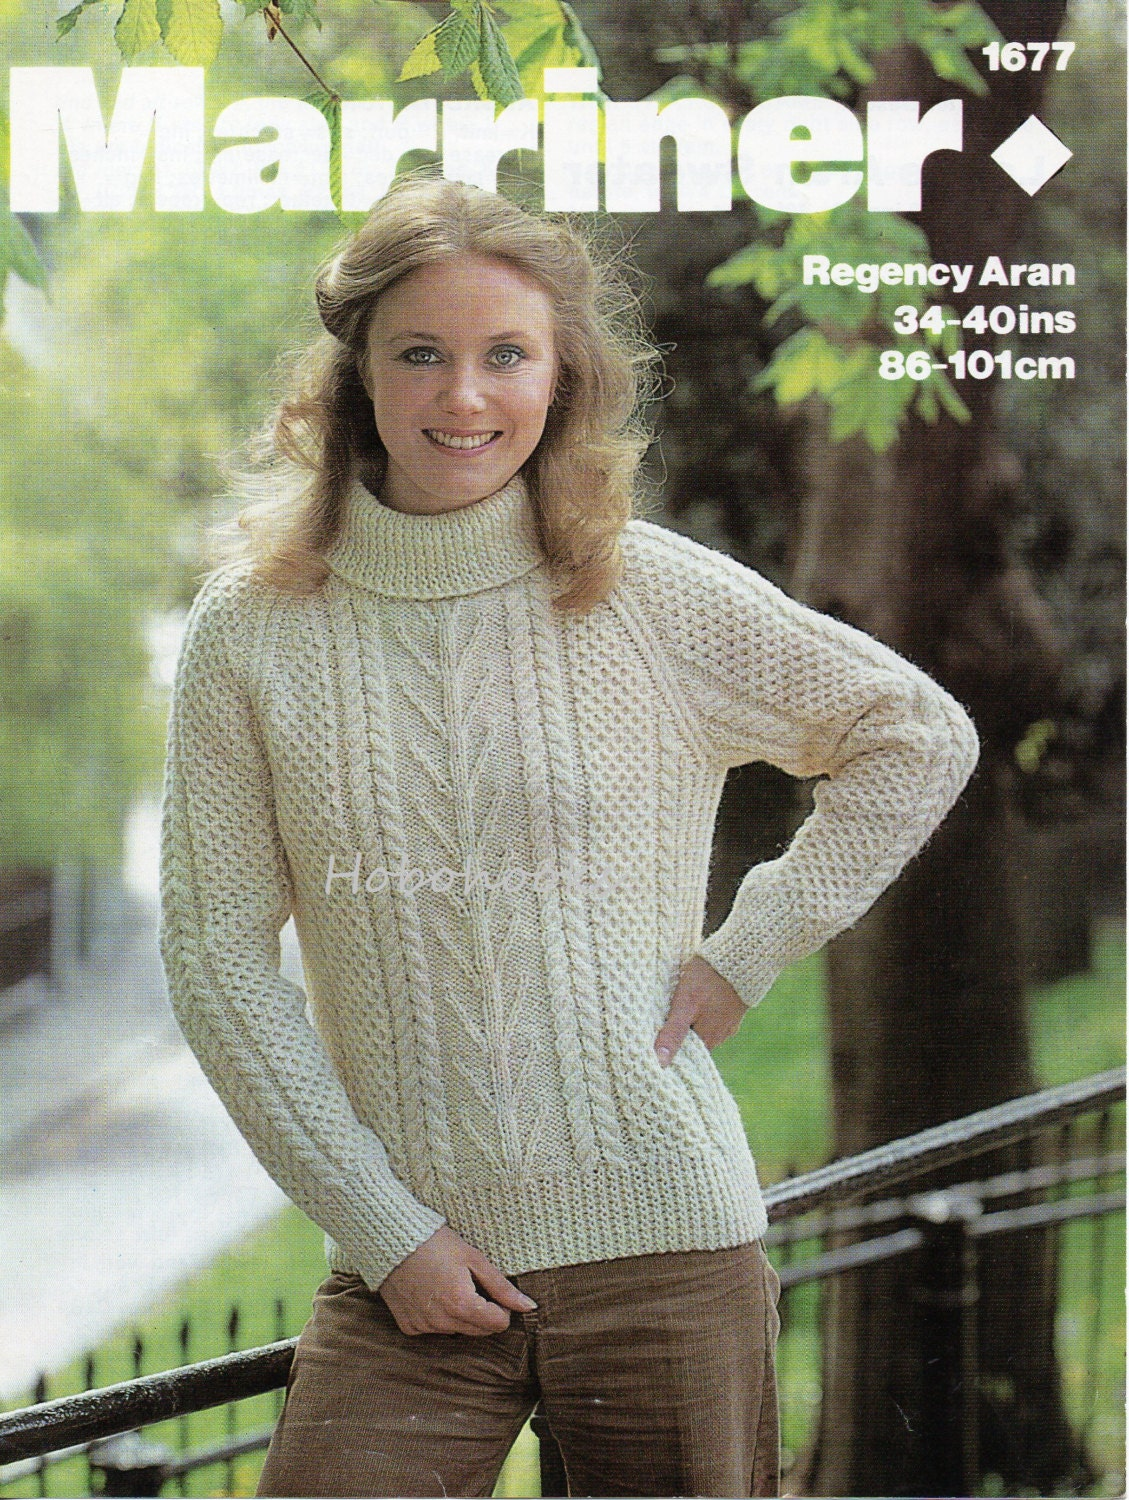 Womens knitting pattern womens aran sweater polo neck crew neck womens knitting pattern womens aran sweater polo neck crew neck aran jumper pattern 34 40 inch ladies knitting pattern pdf instant download bankloansurffo Gallery